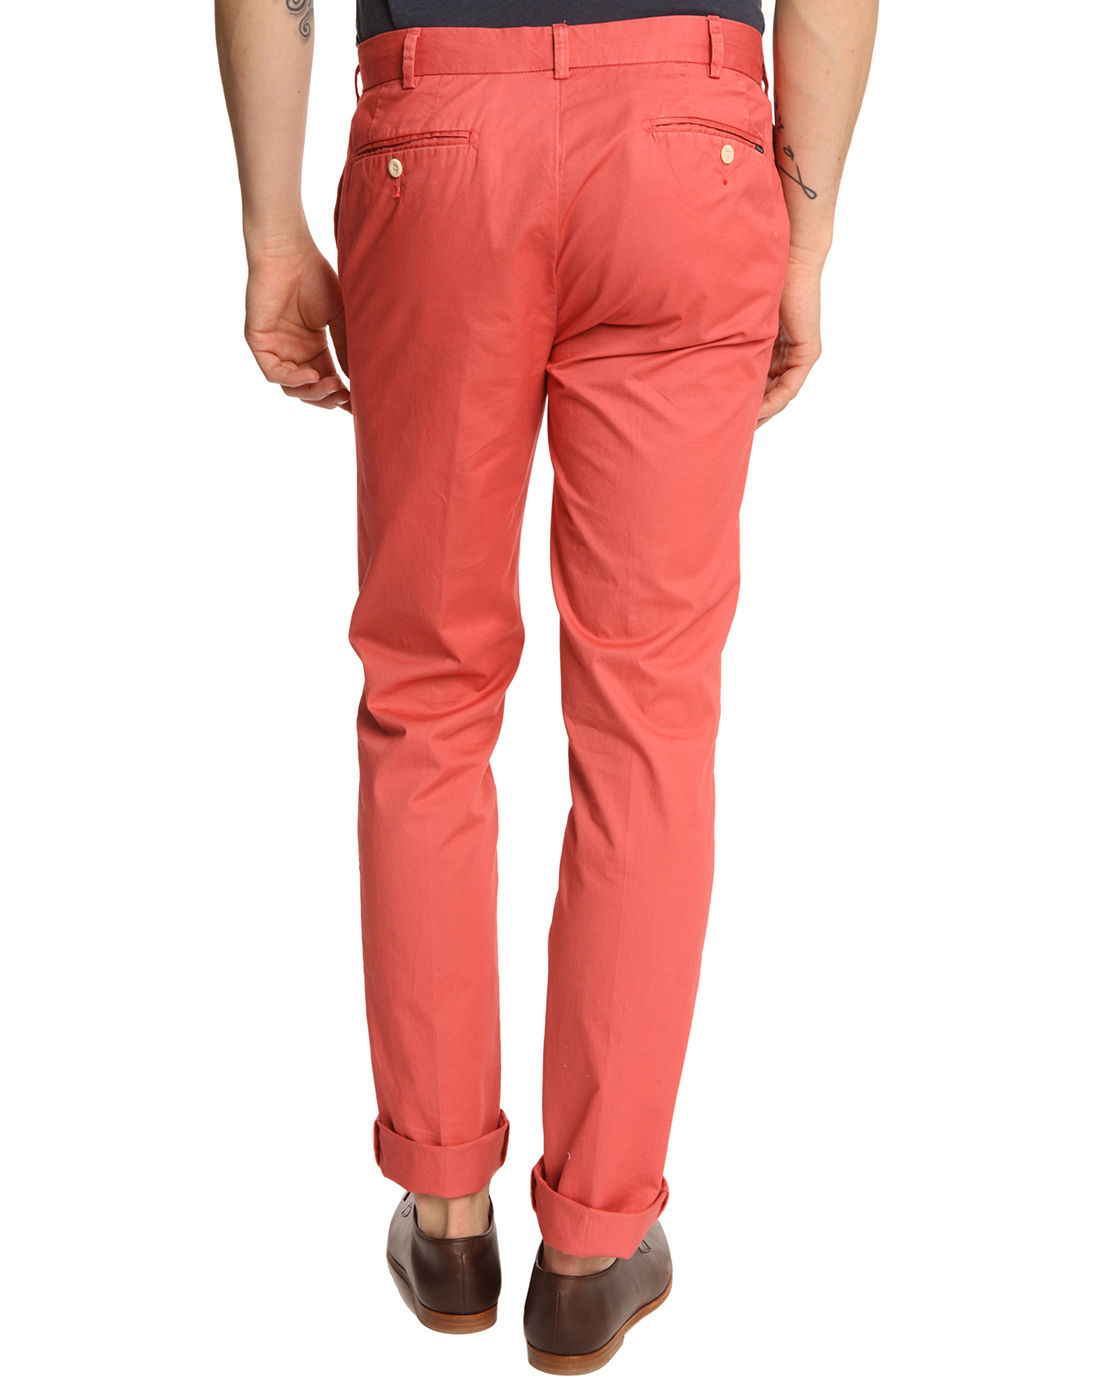 Polo Ralph Lauren Hudson Brick Red Chinos In Red For Men